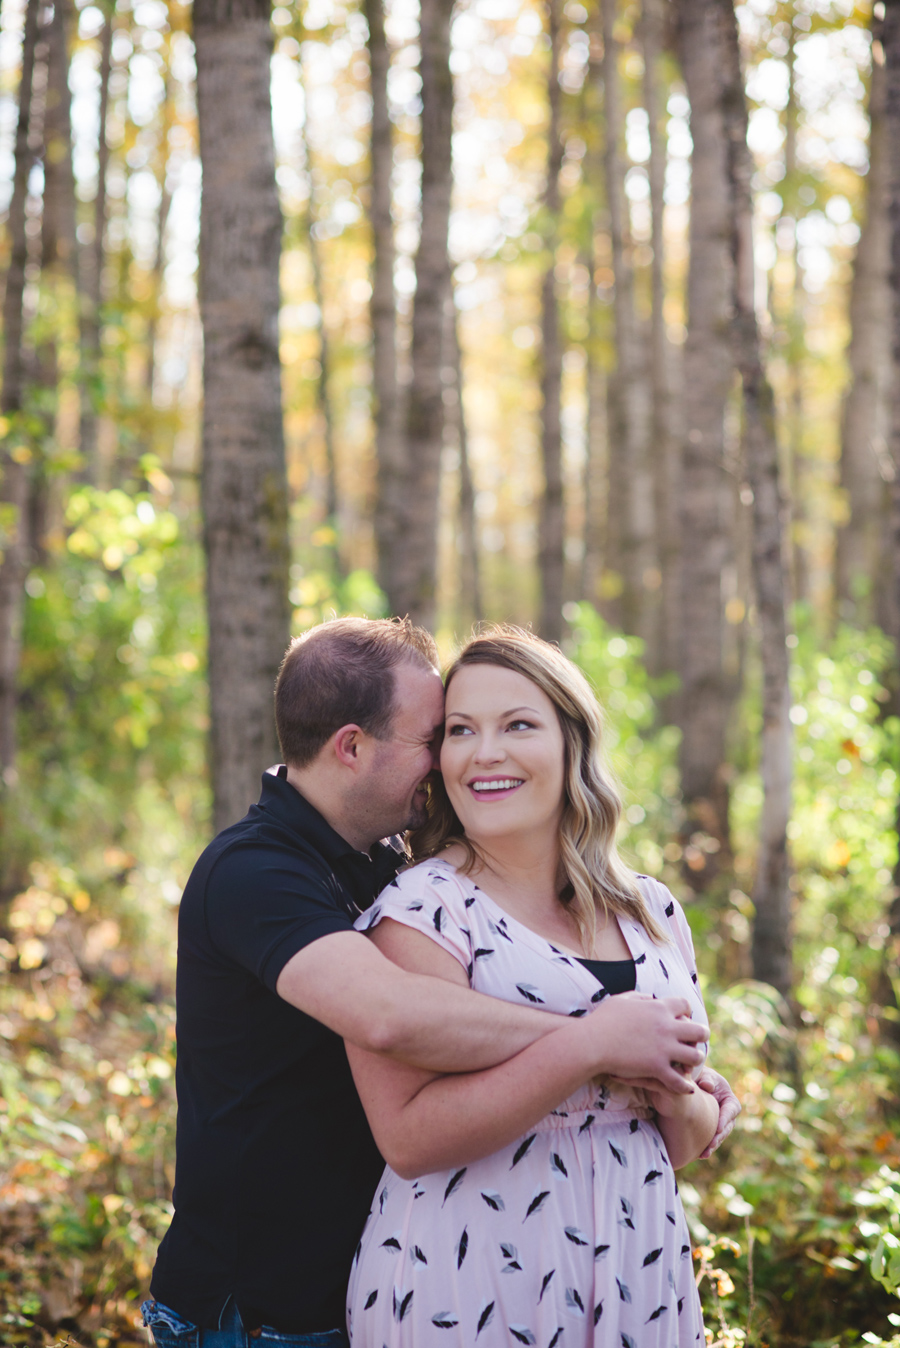 bbcollective_yeg_2016_marilynandian_engagement_photography005.jpg